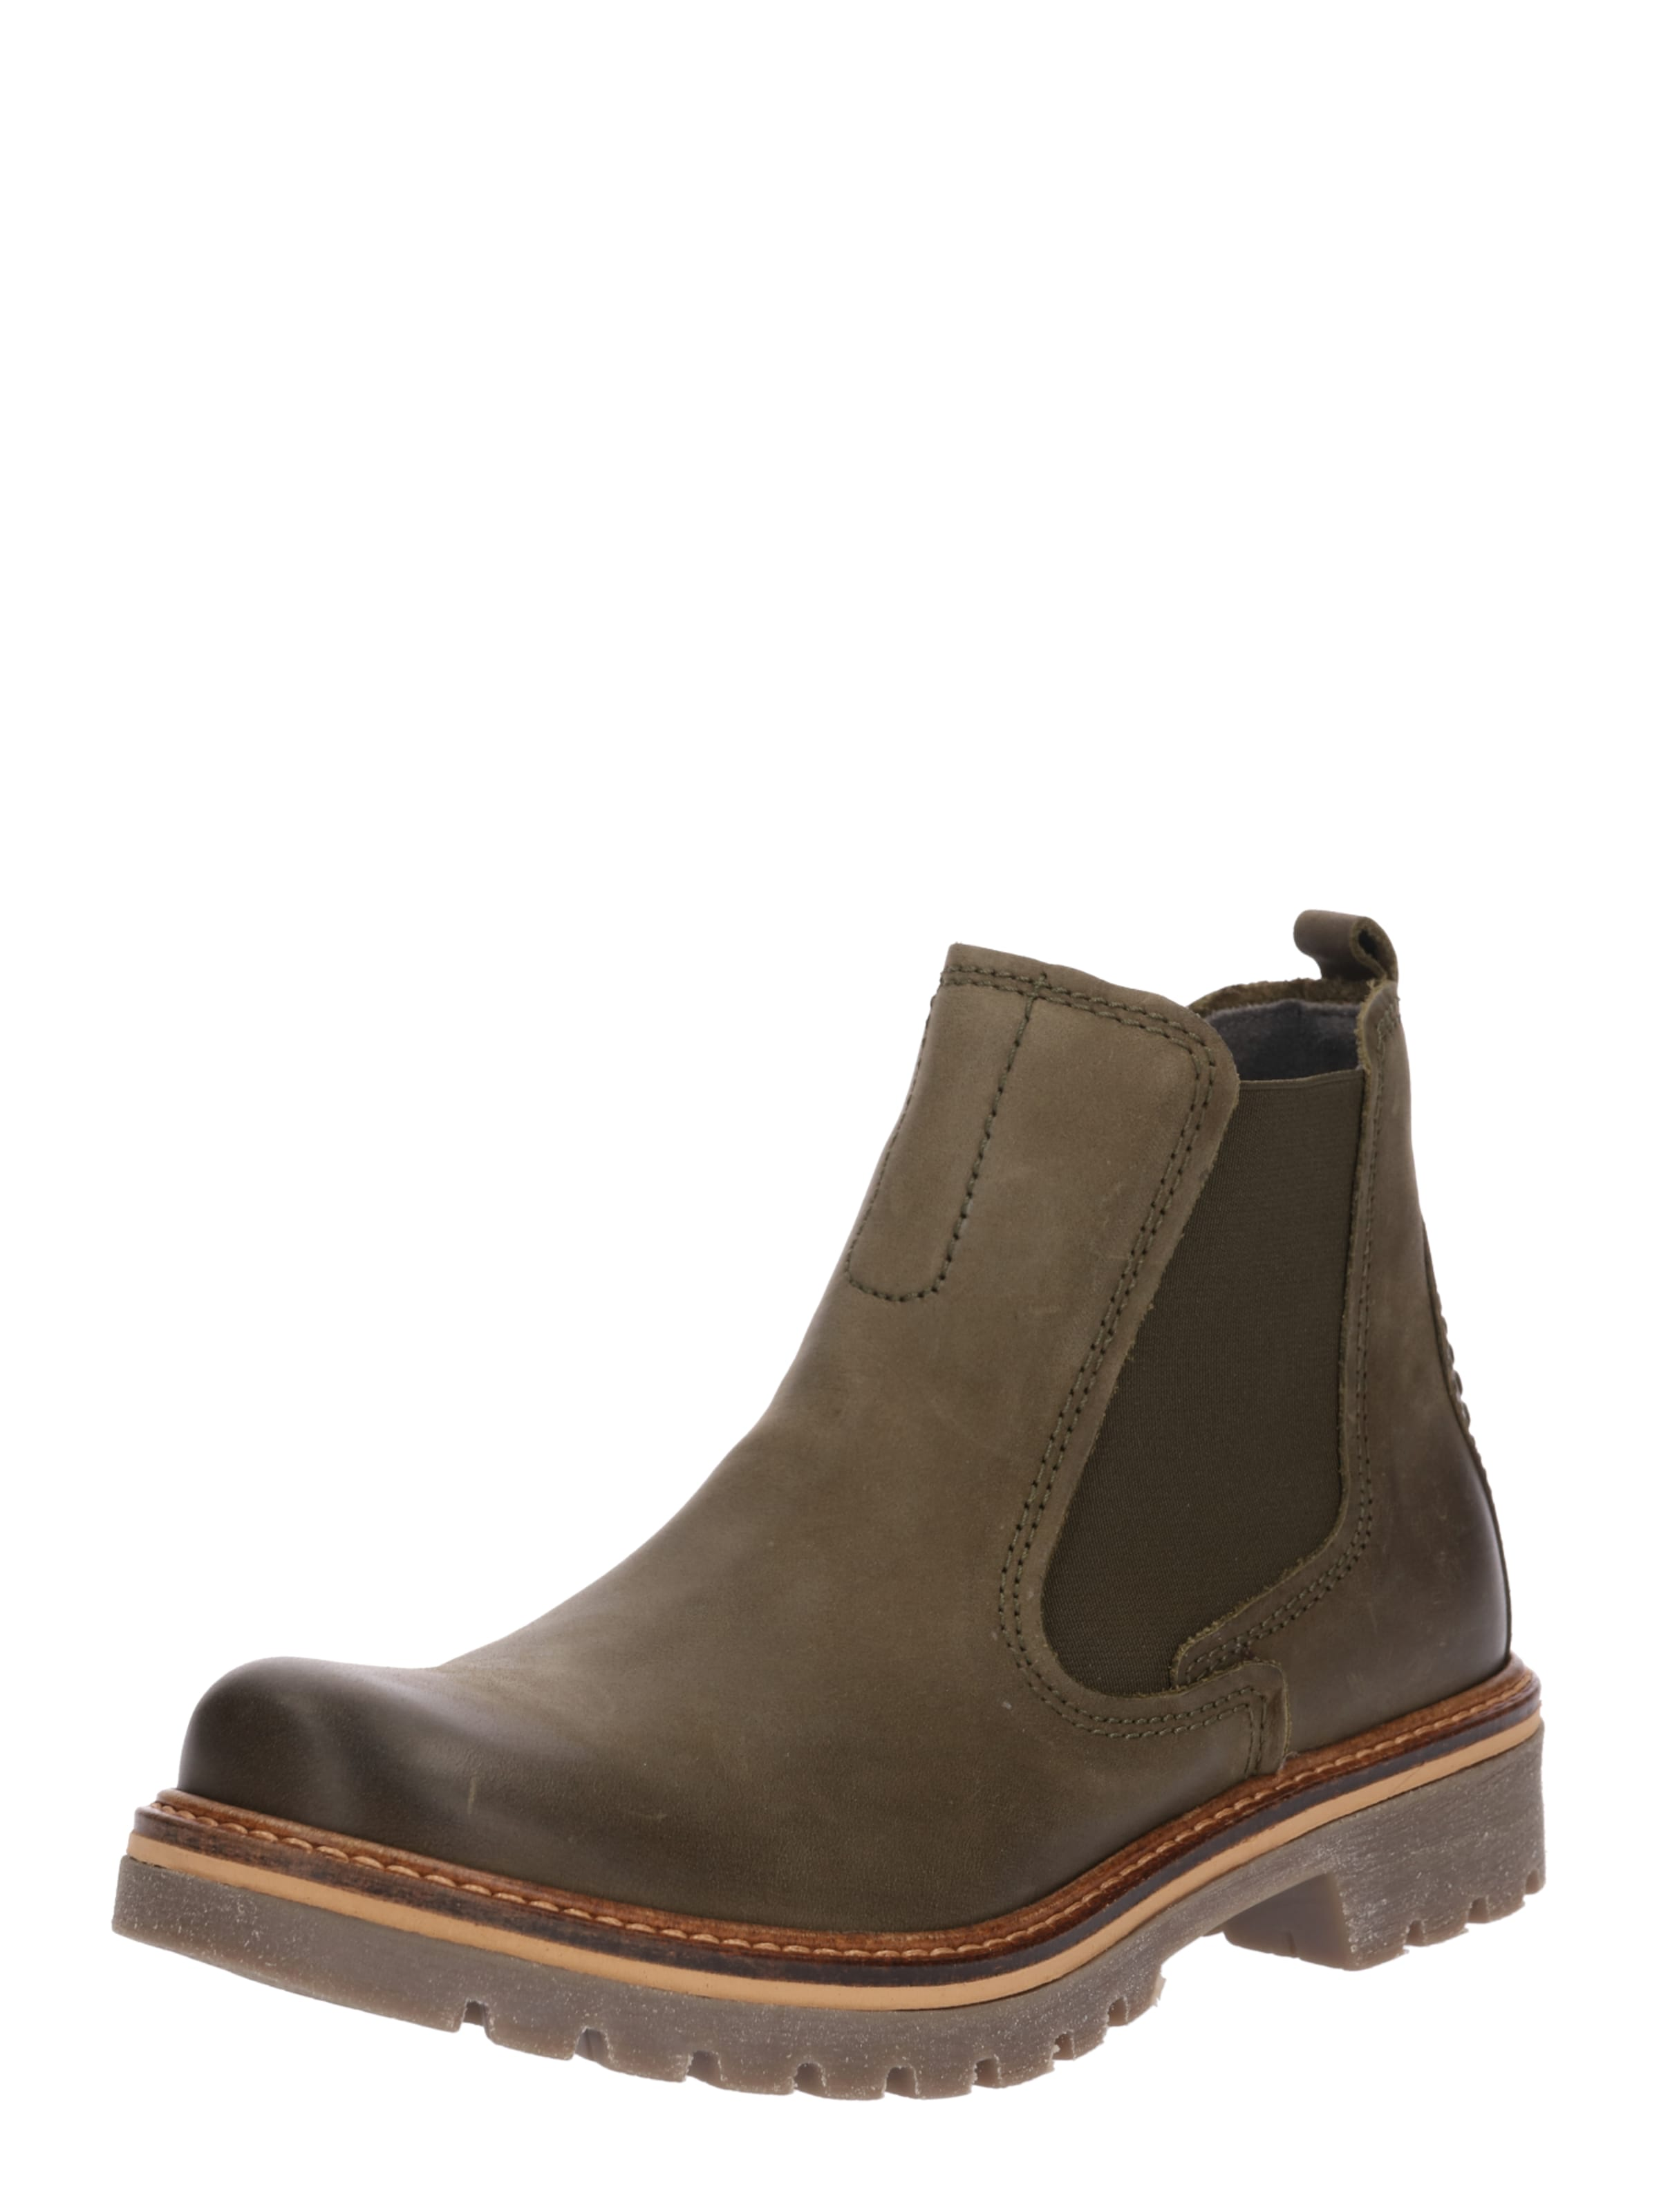 CAMEL ACTIVE | Chelsea Boots 'Canberra' Schuhe Gut getragene getragene getragene Schuhe f901bc